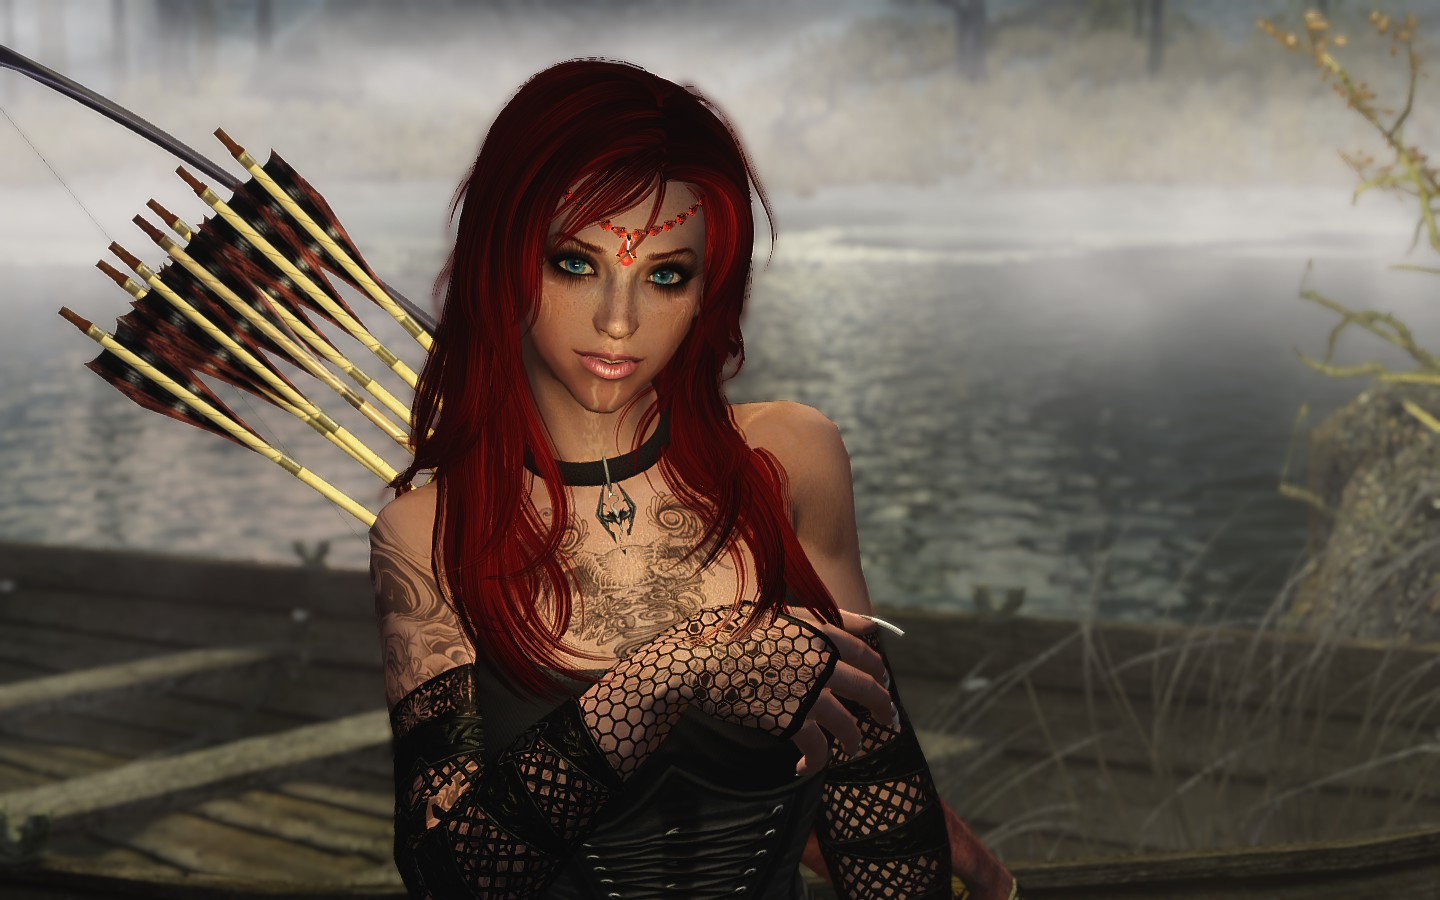 Skyrim Girl Wallpaper Steam Community Guide How To Make A Beautiful Female